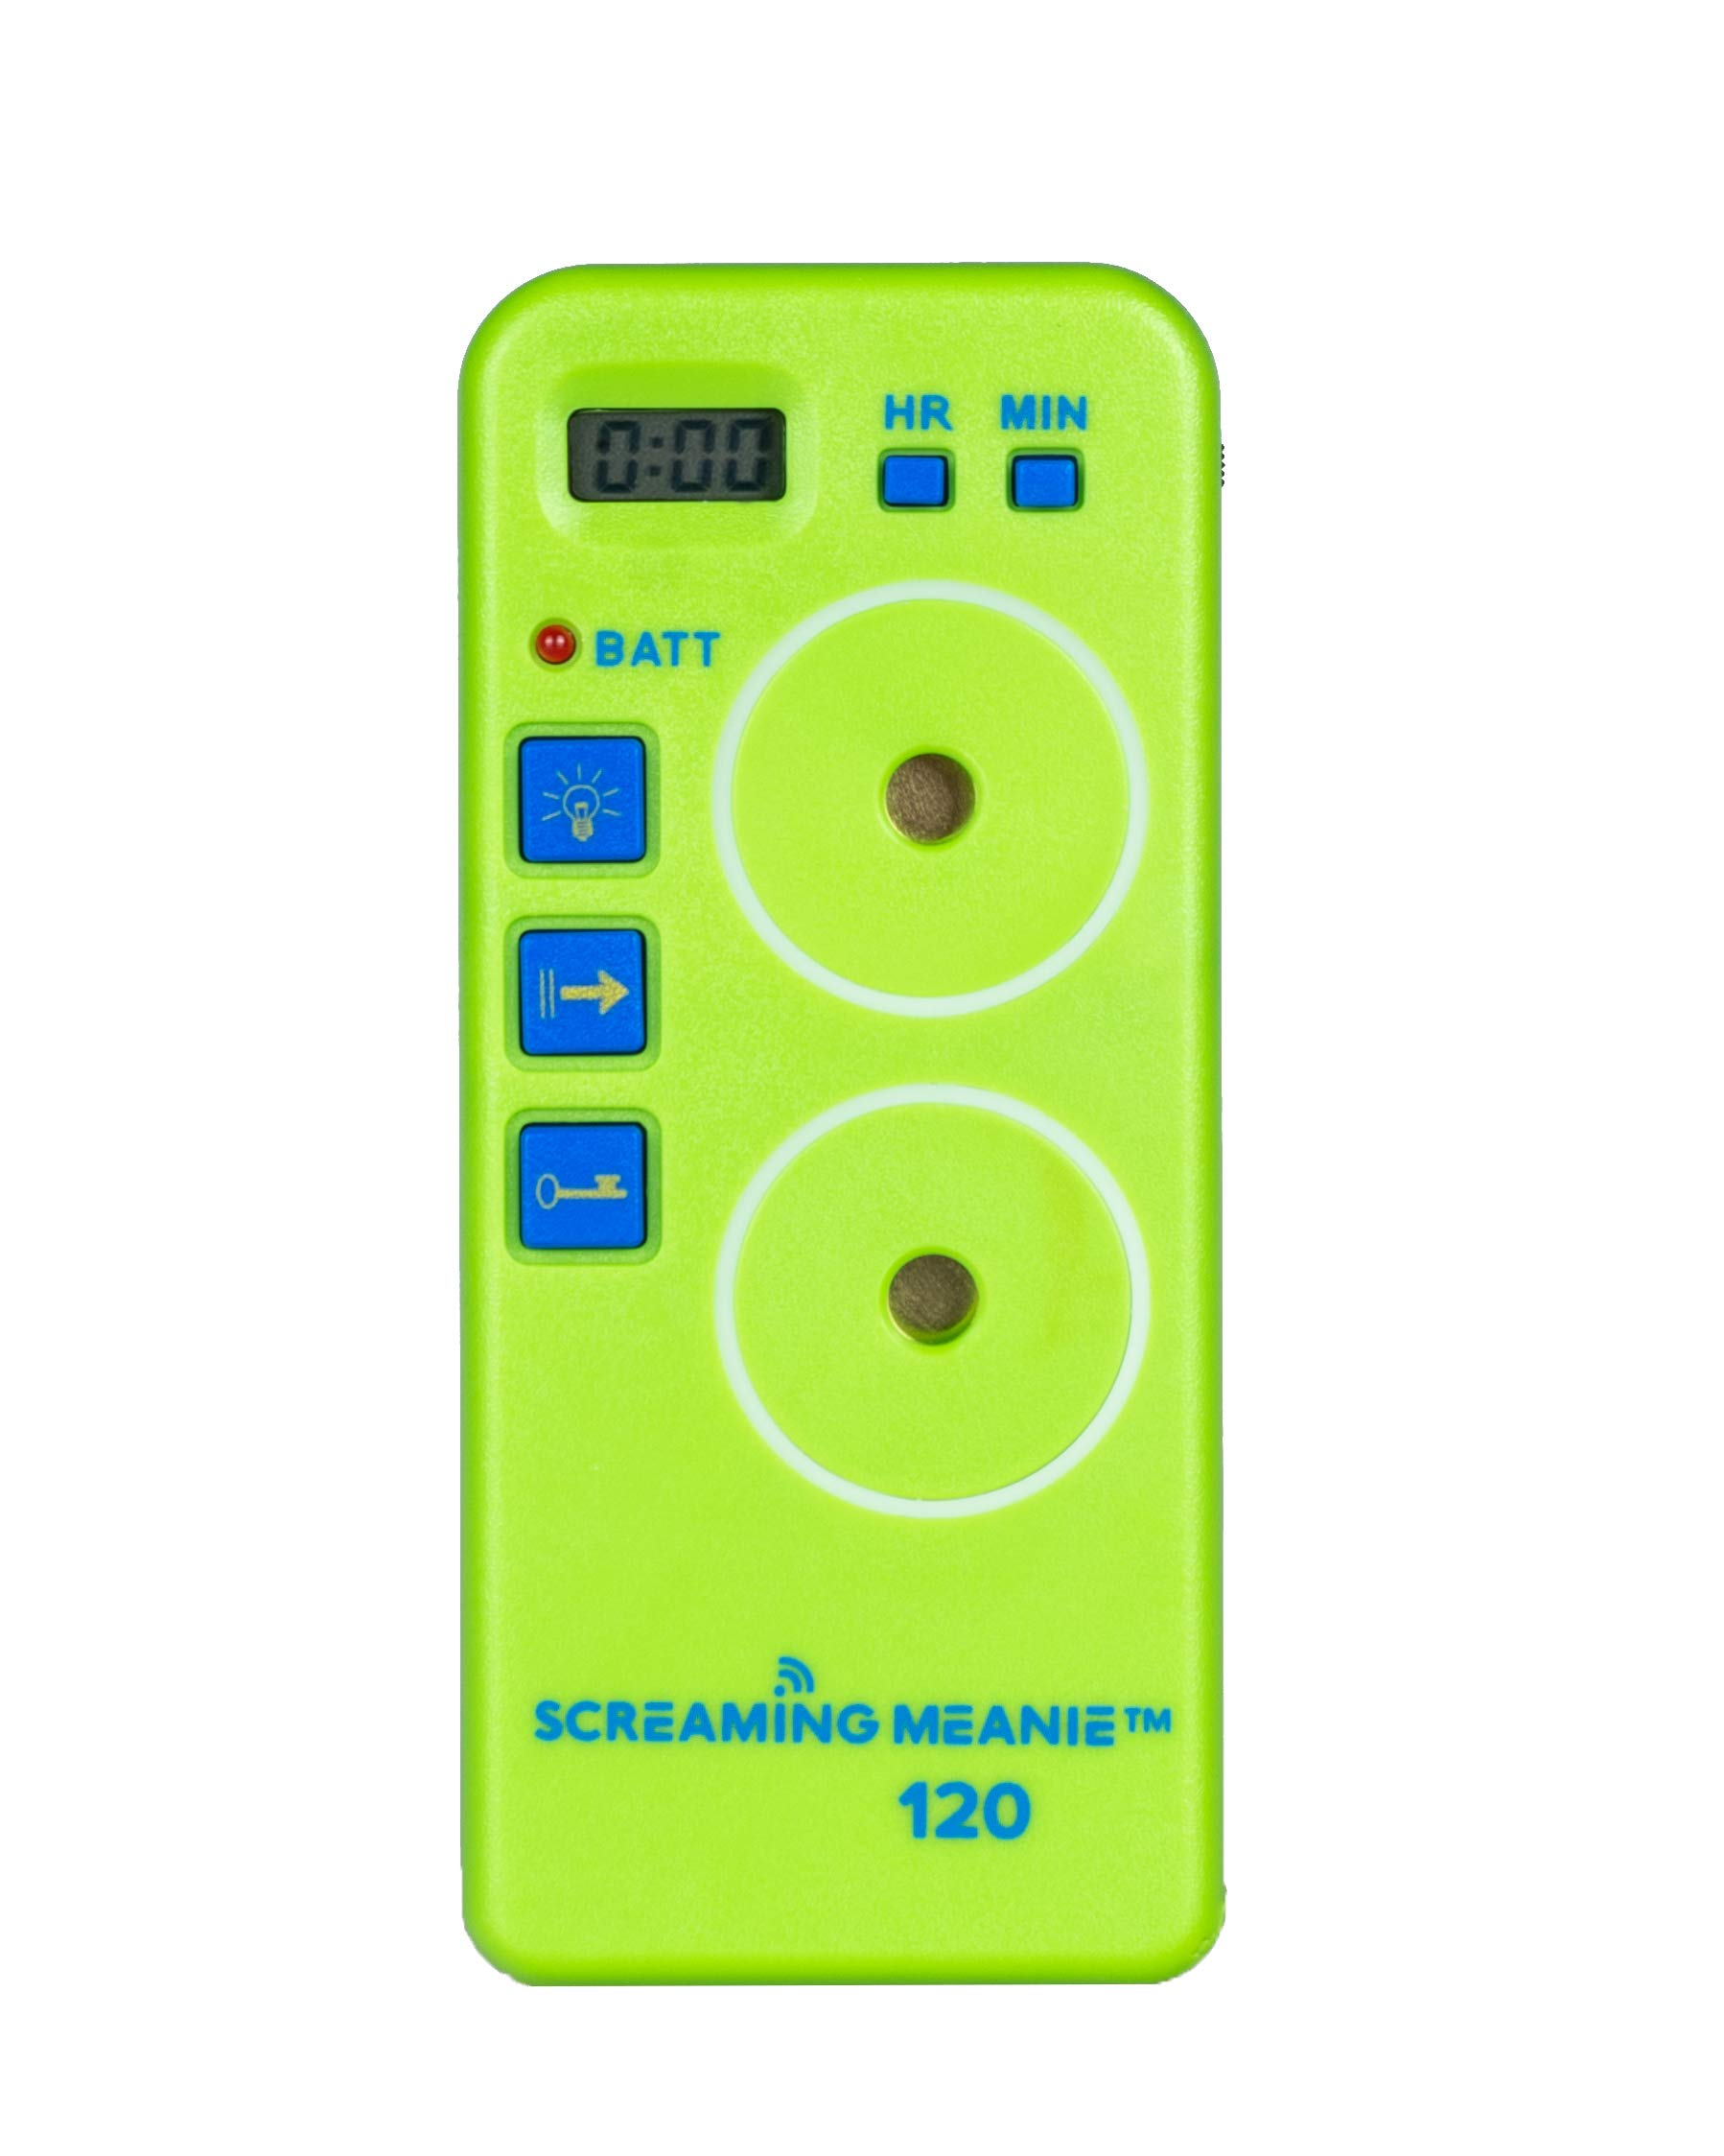 Screaming Meanie TZ-120 Alarm Timer - Extremely Loud - Travel Friendly - Multi-Purpose - 2 Sound Levels - Battery Included - Lime Green